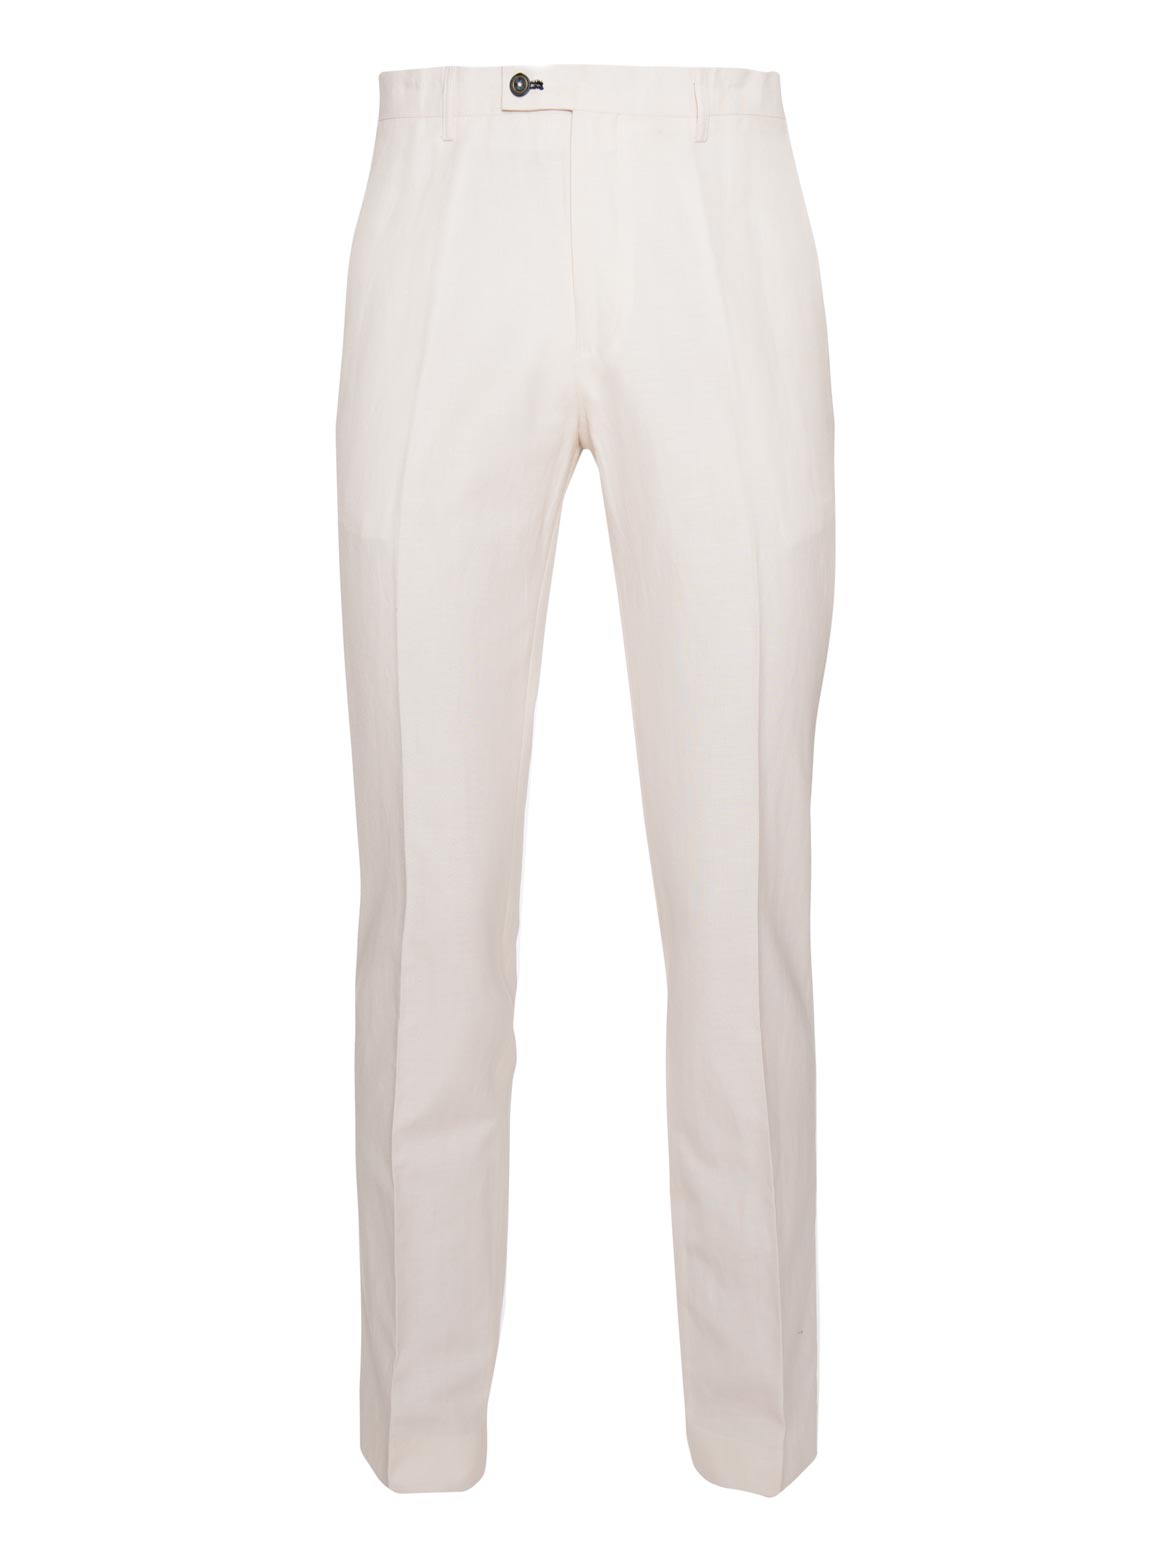 paisley & gray off-white slim fit suit pant 2126P